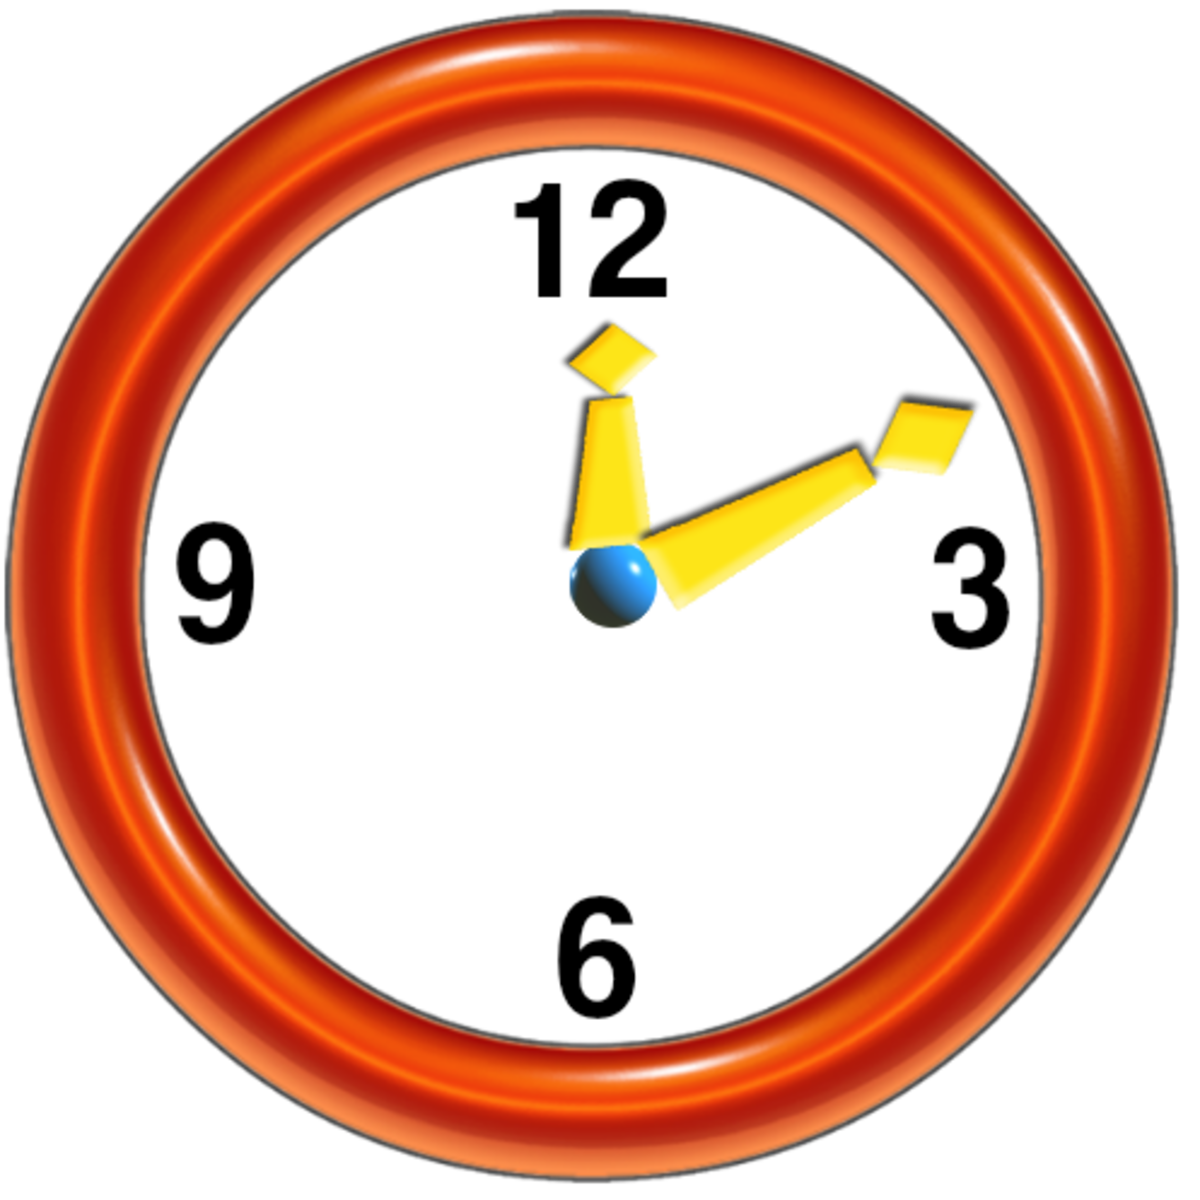 Telling Time Interactive Games - 8 Fun-filled Ways for Learning to Tell Time